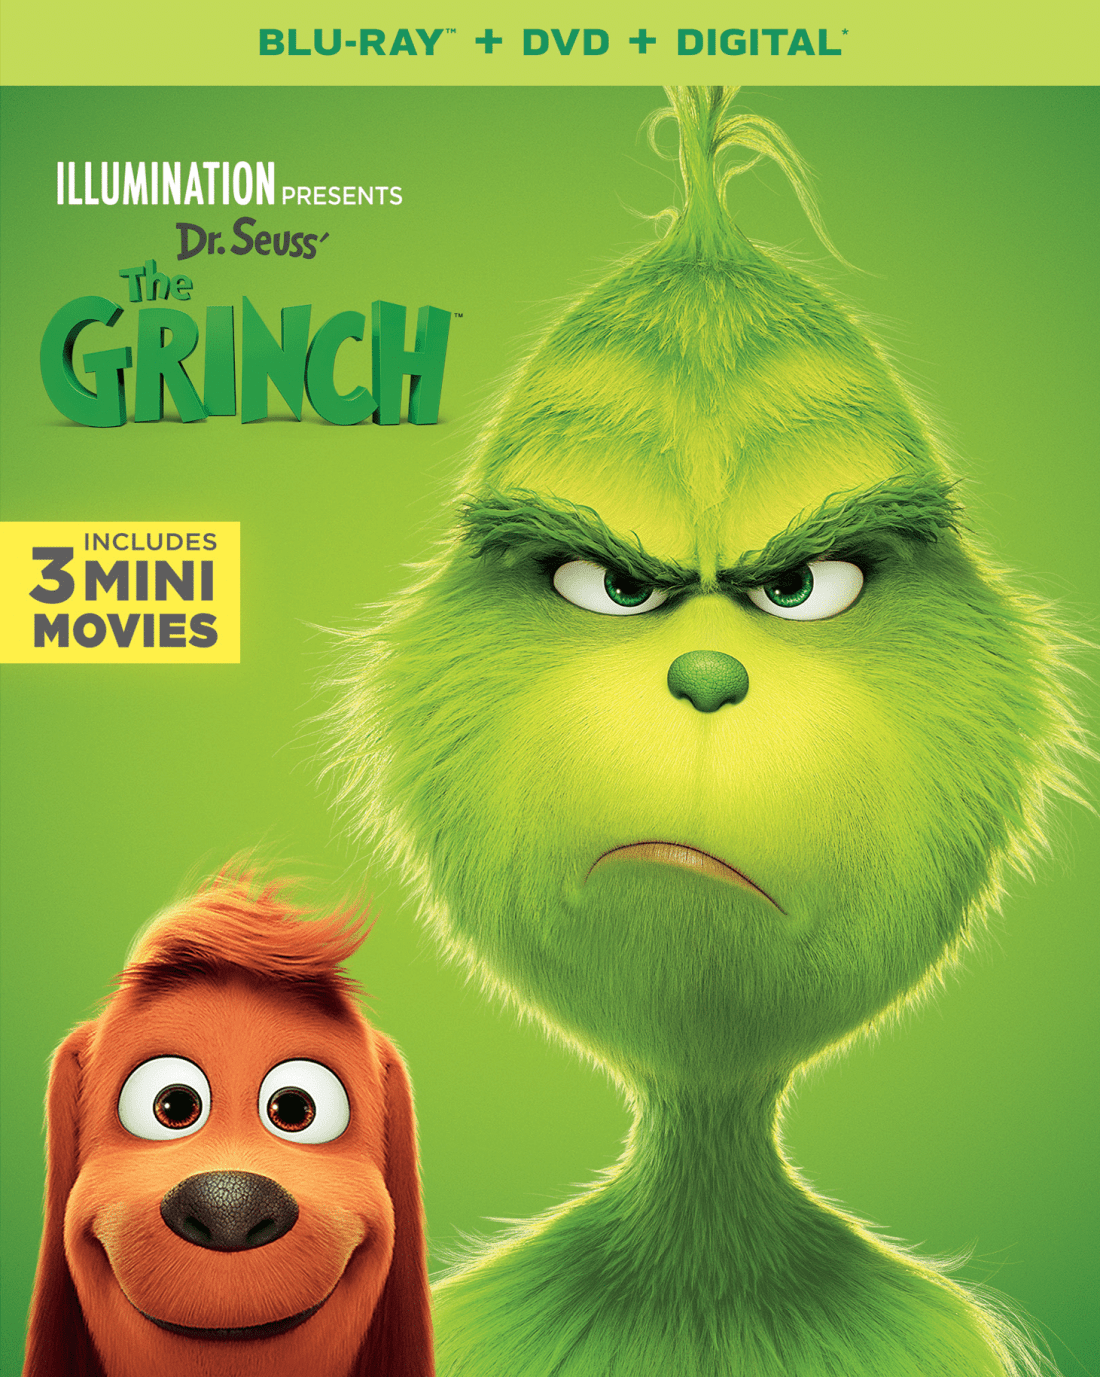 Universal Pictures Home Entertainment's Dr. Seuss' The Grinch Bluray Cover. Universal Pictures Home Entertainment's Dr. Seuss' The Grinch will be available on Digital January 22, and on Bluray February 5, 2019. Learn More!